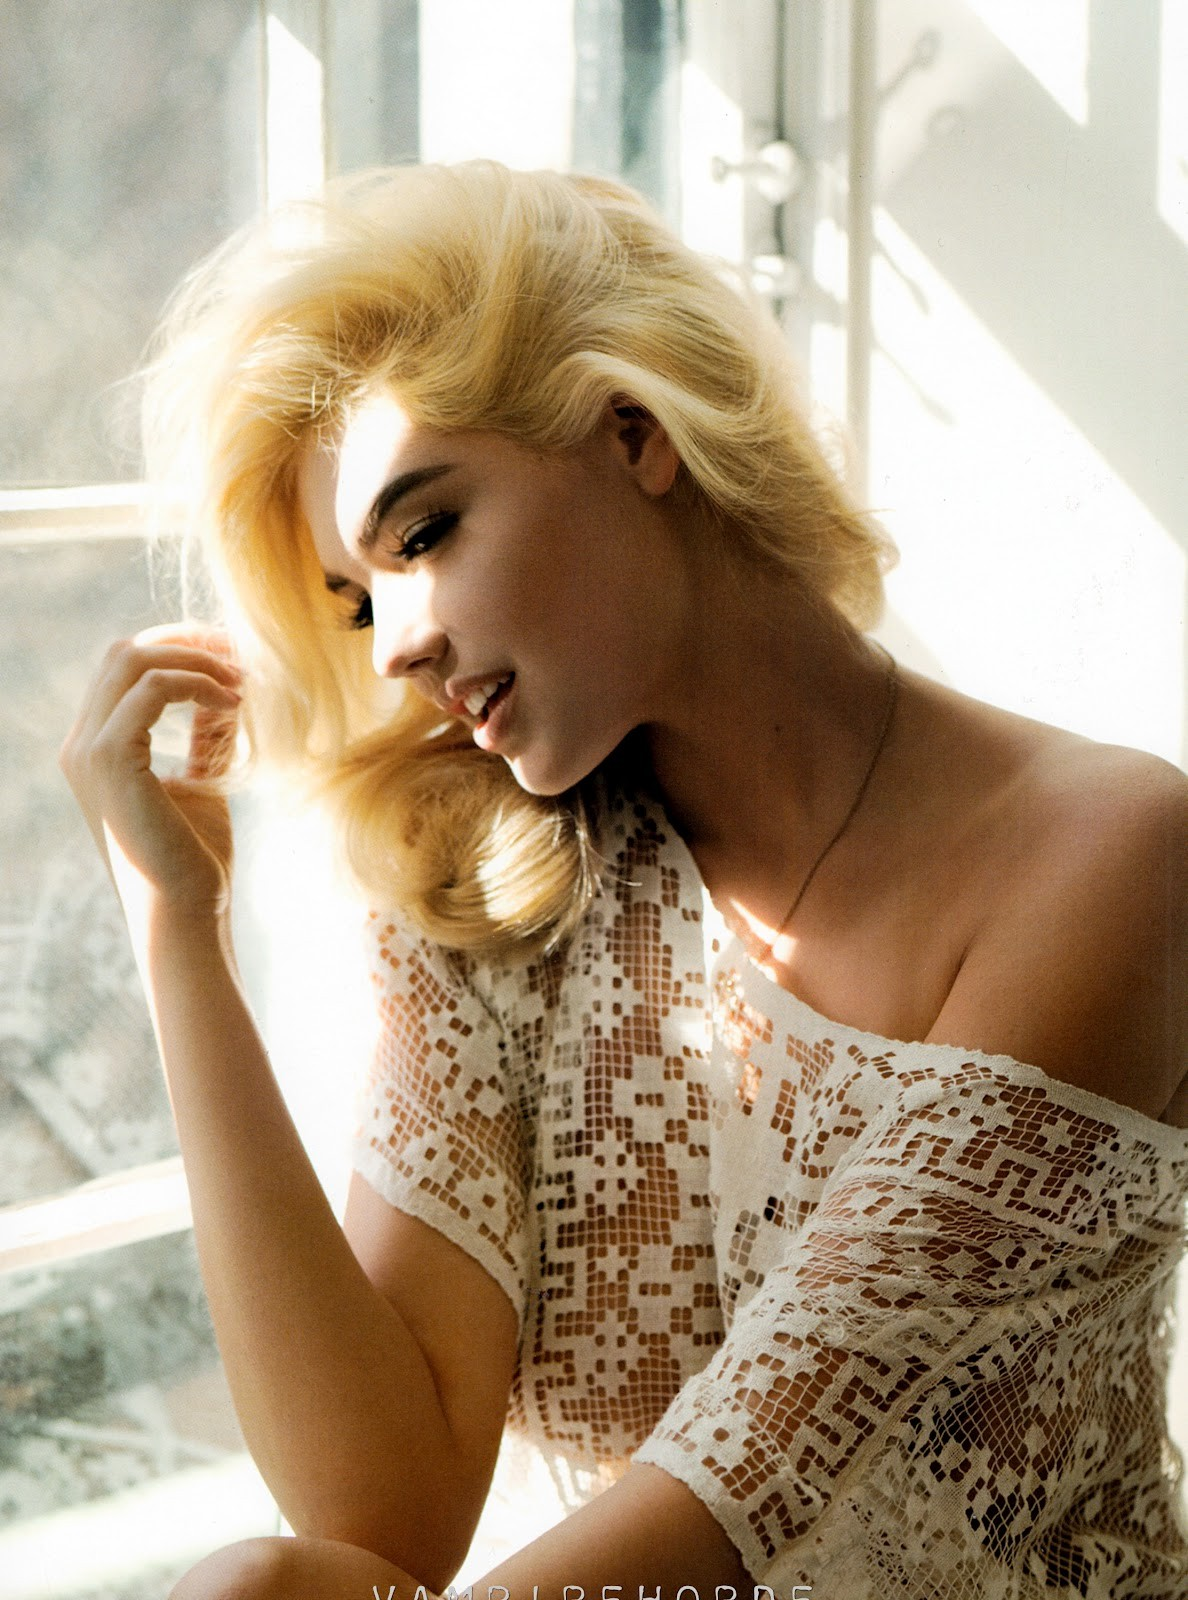 This Italian It Girl Is Your New Style Muse: Kate Upton Muse Magazine Photo Shoot